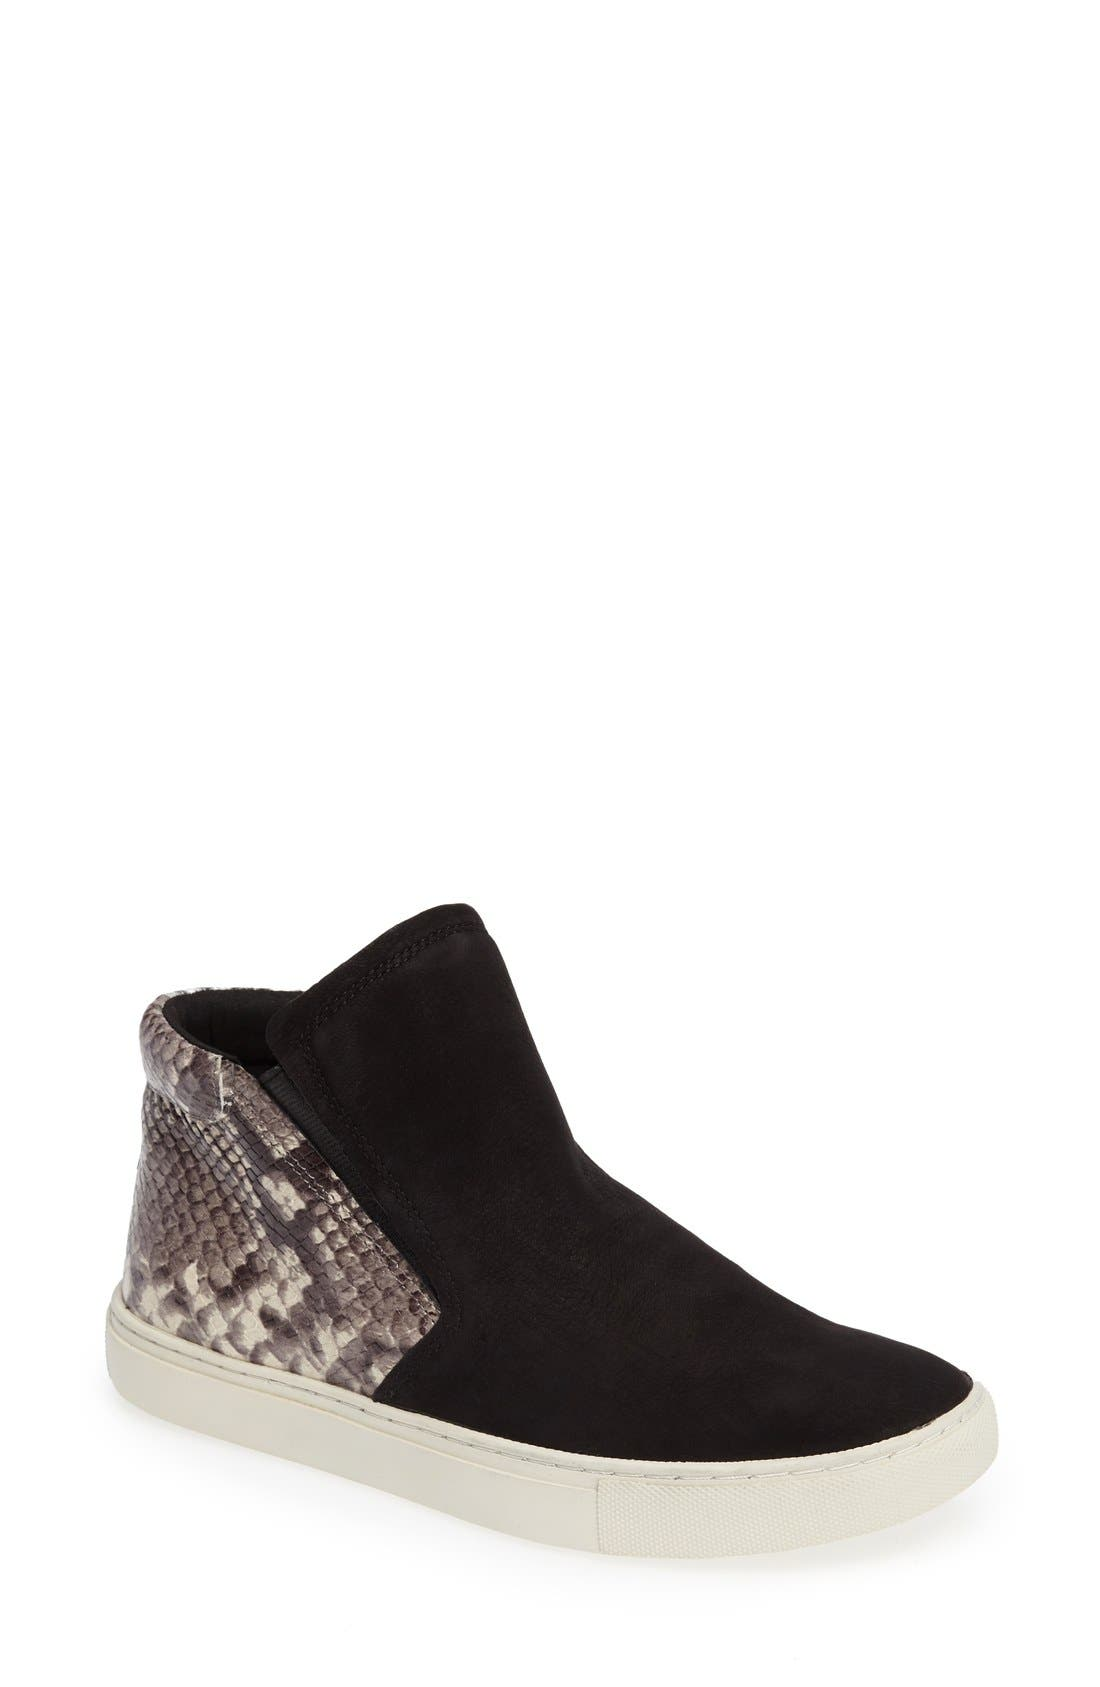 Kenneth Cole New York Kalvin Python Embossed Mid Top Sneaker (Women)